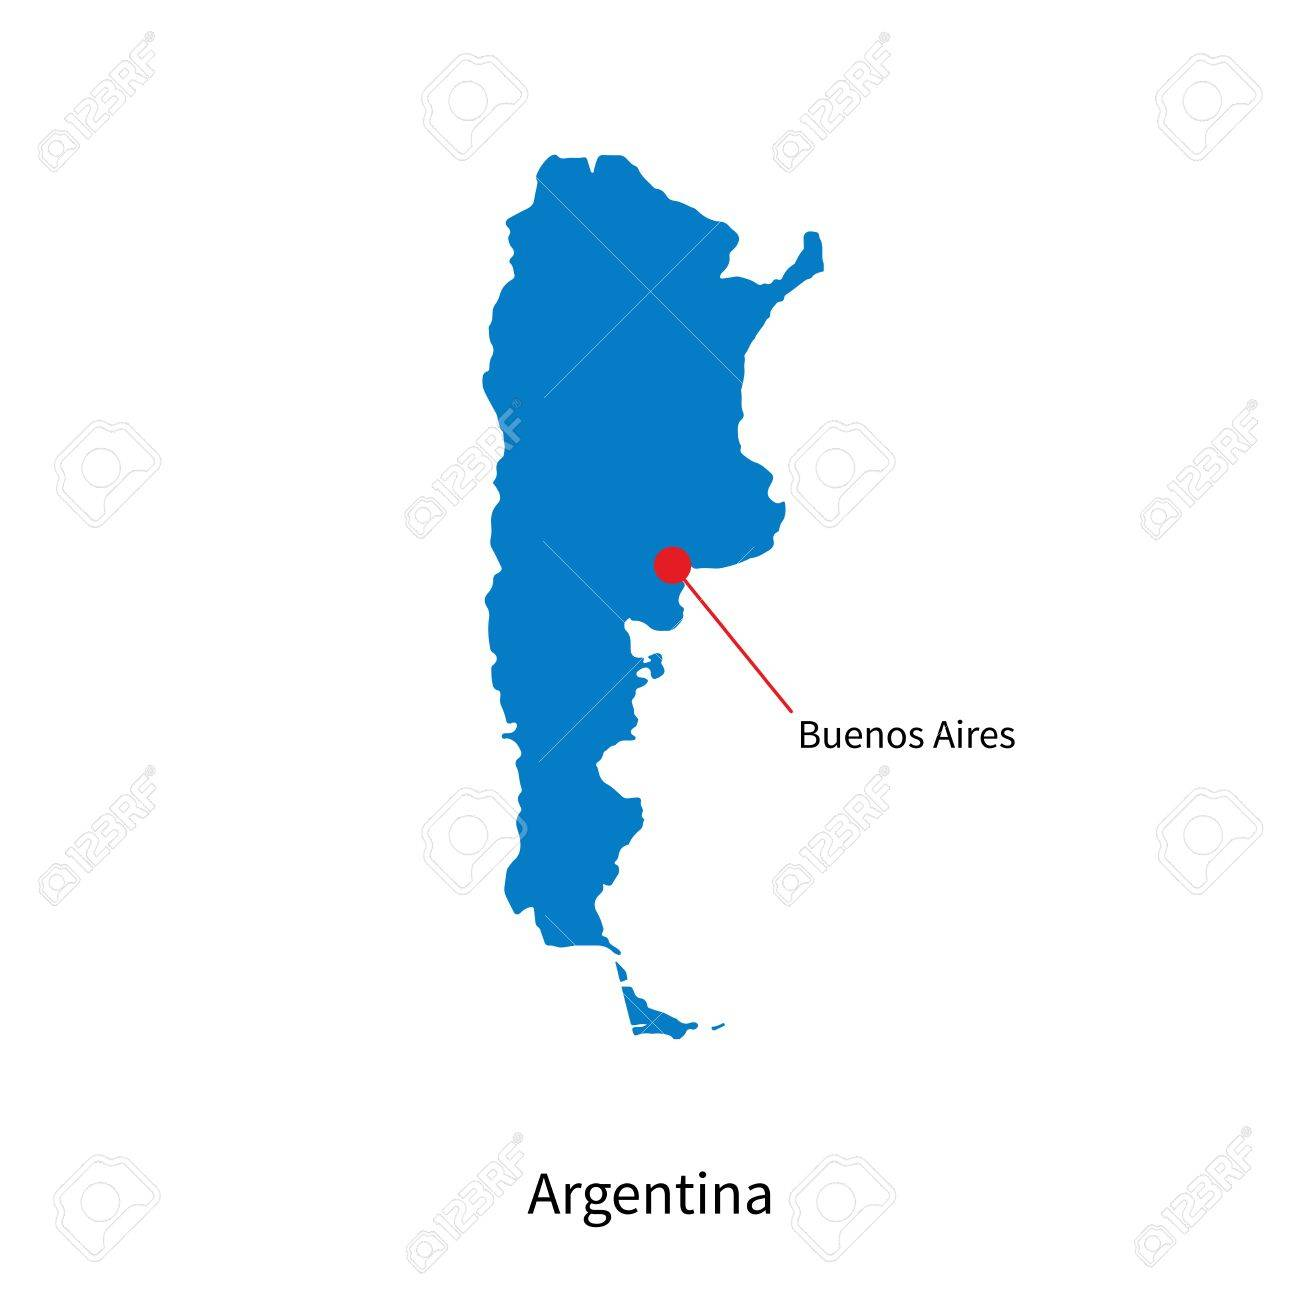 Detailed Vector Map Of Argentina And Capital City Buenos Aires - Argentina cities map